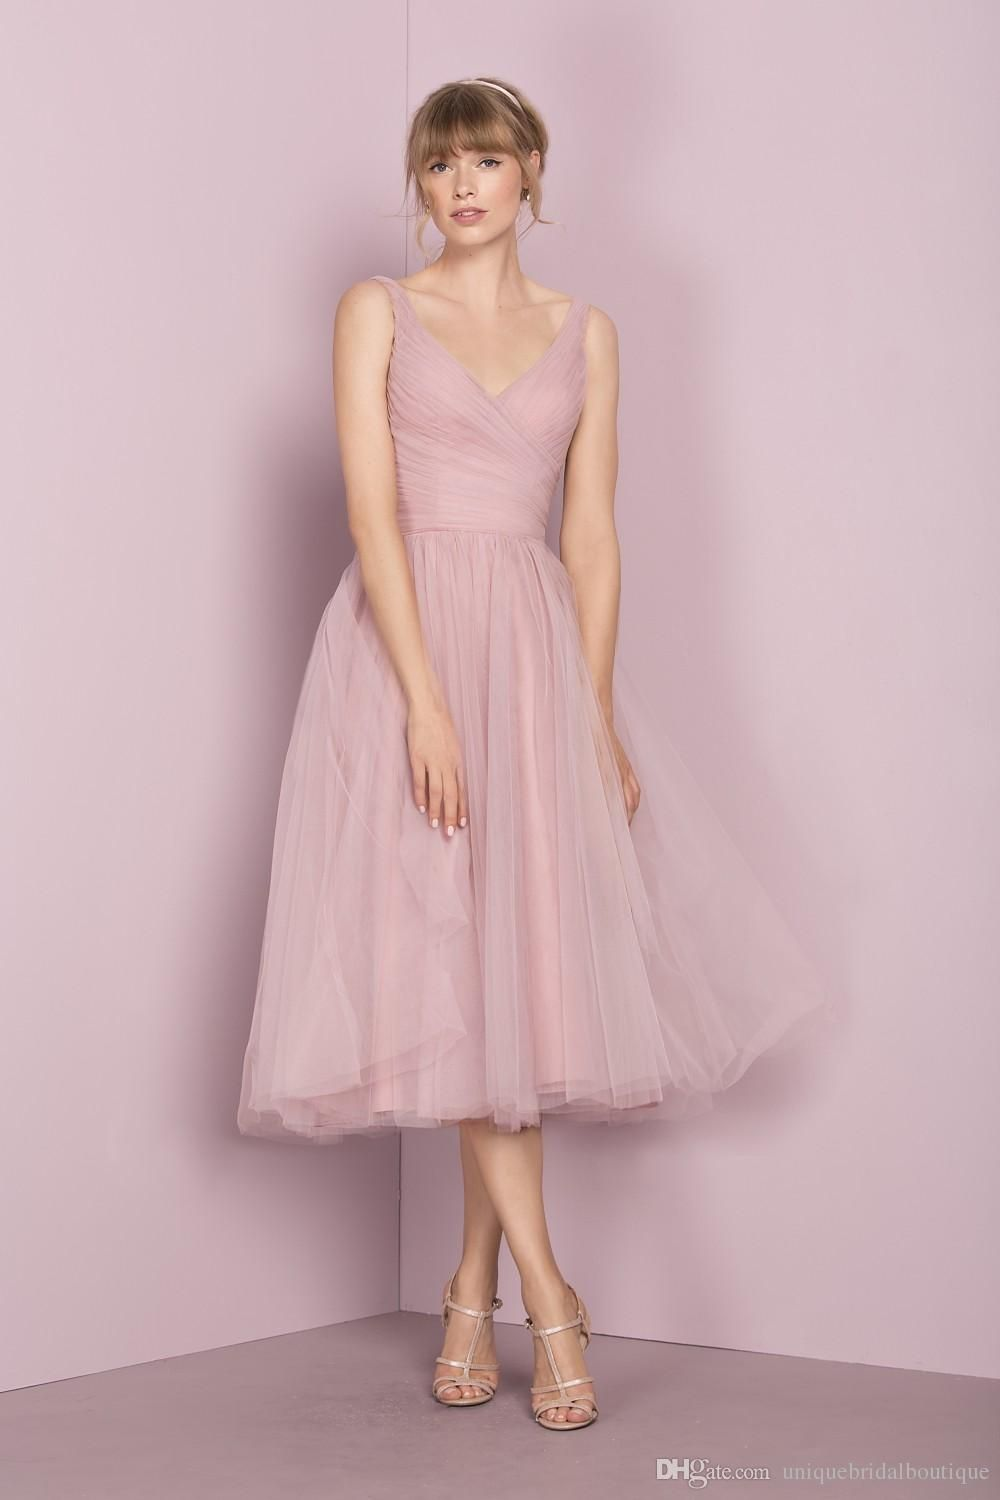 vintage bridesmaid dresses us with tea length and v neck